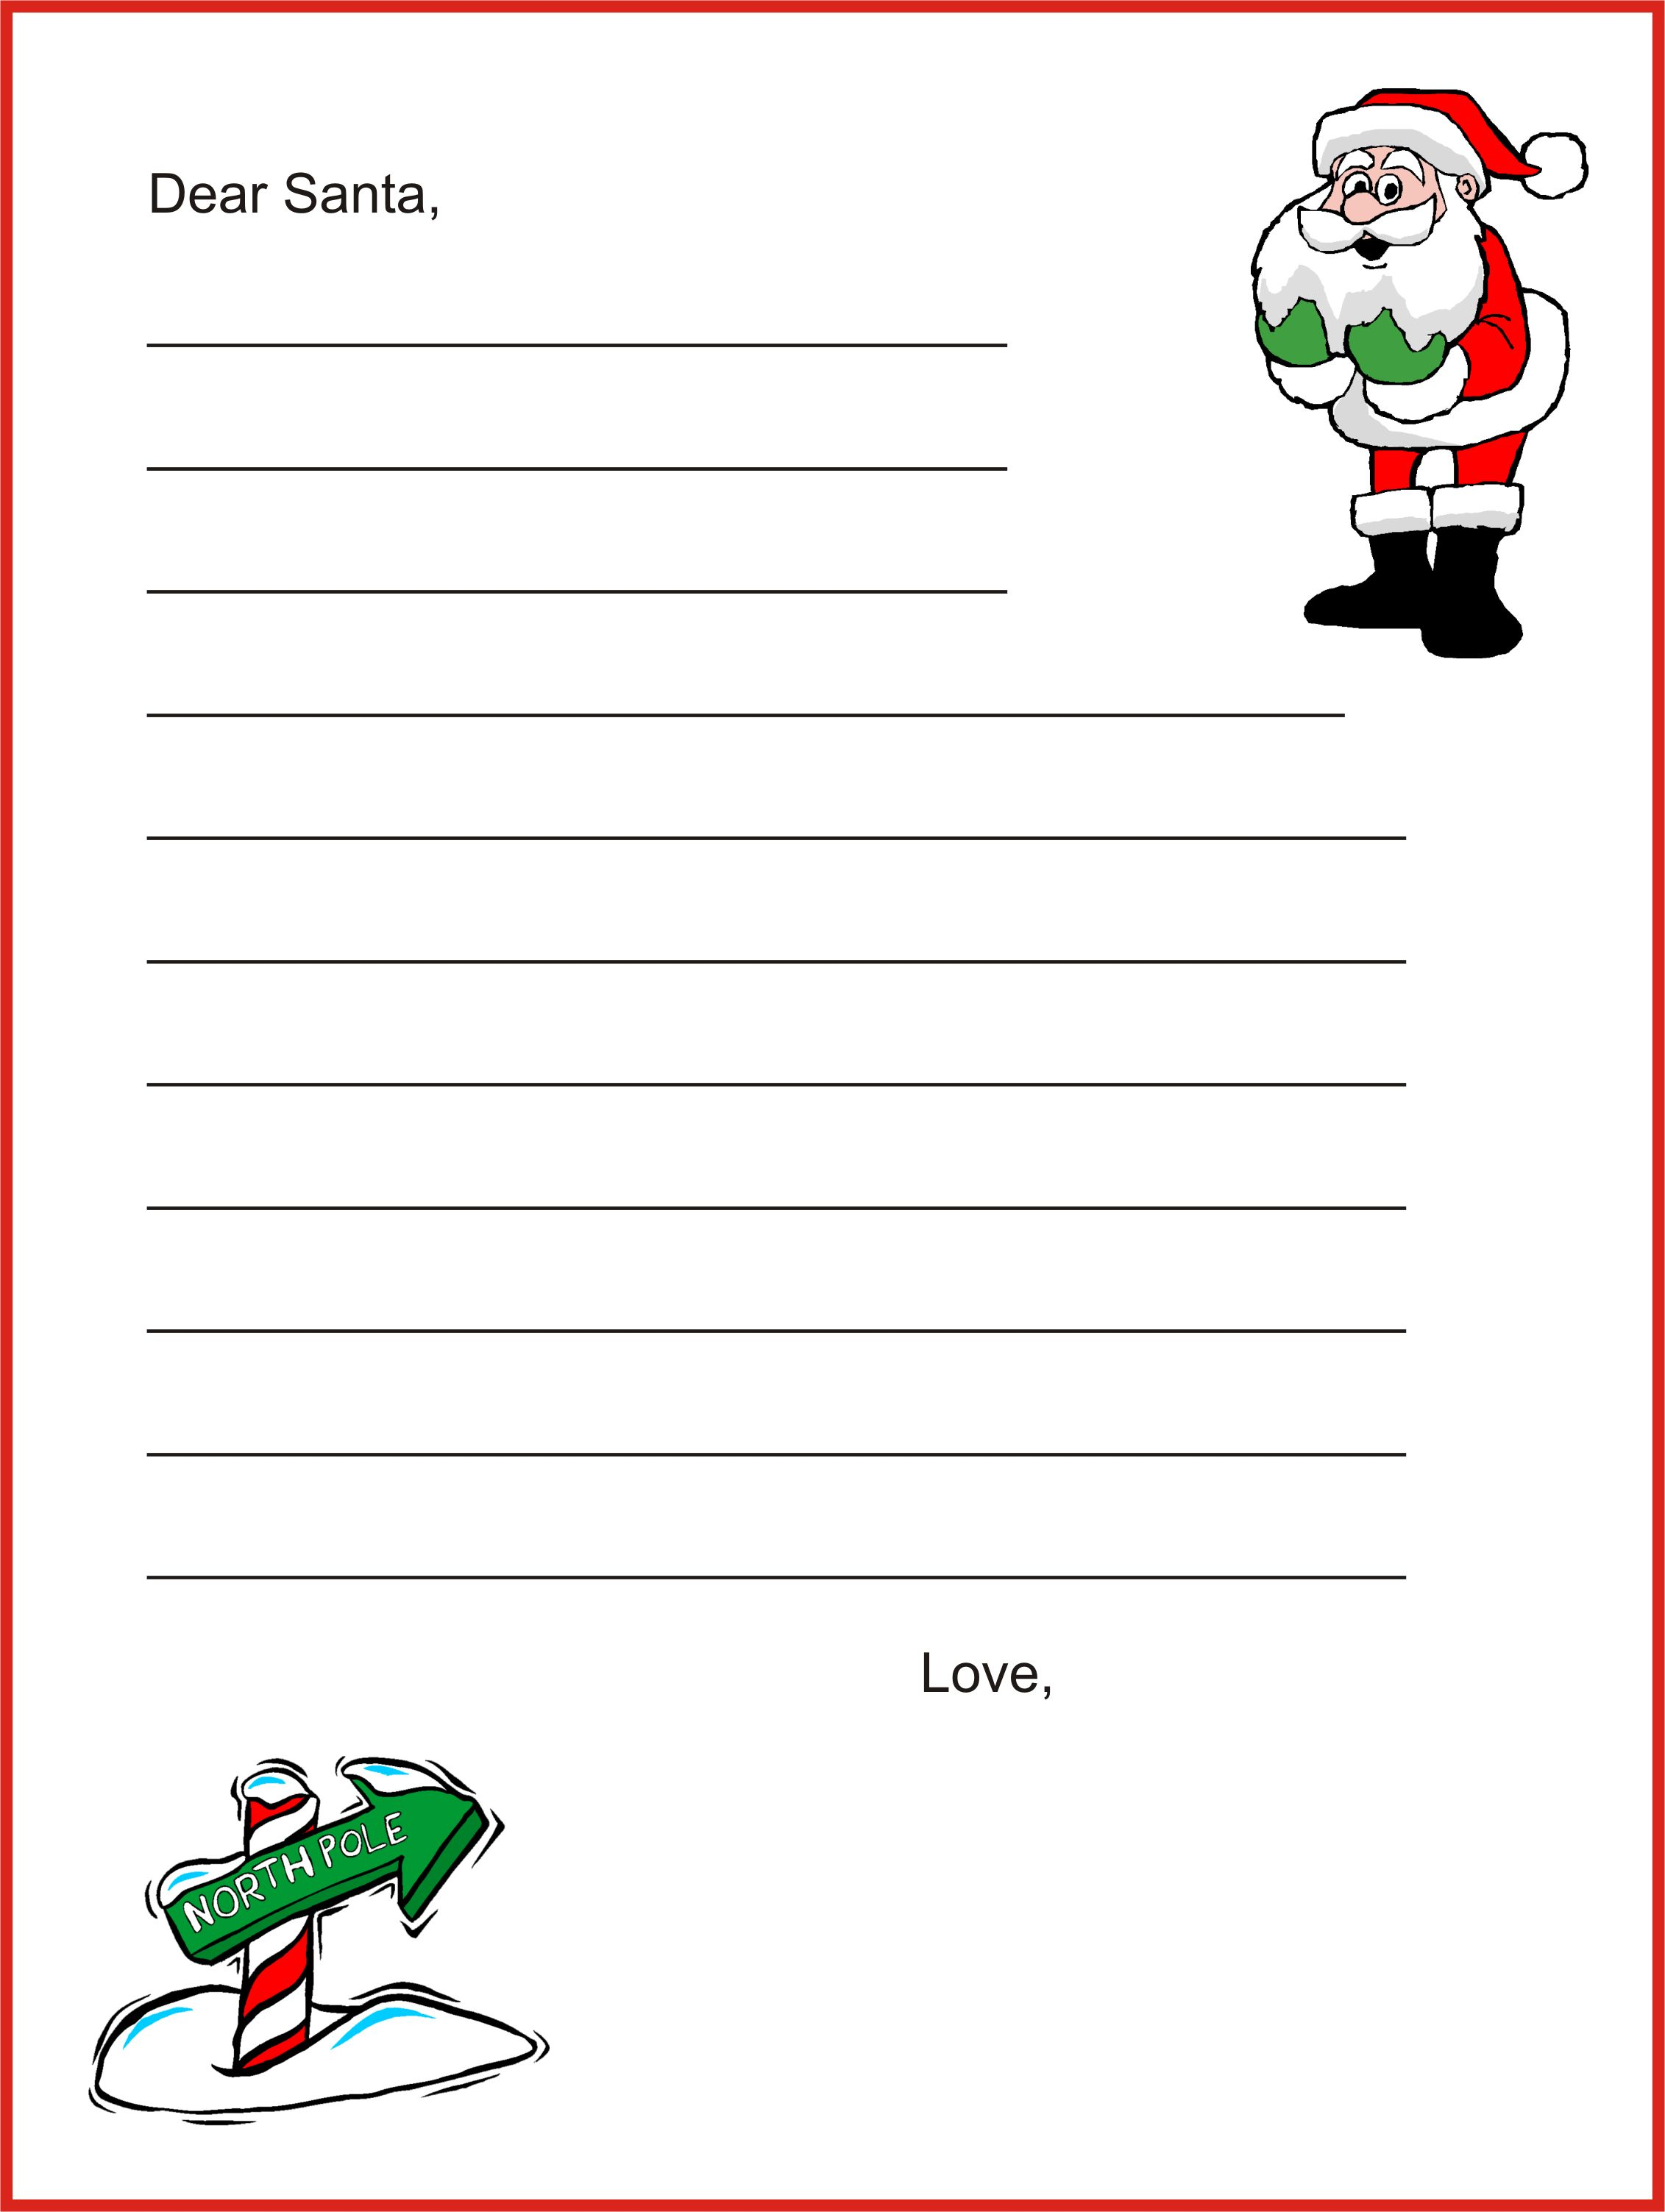 Christmas Letter Format graphic design sample resume sample cover – Christmas Letter Format